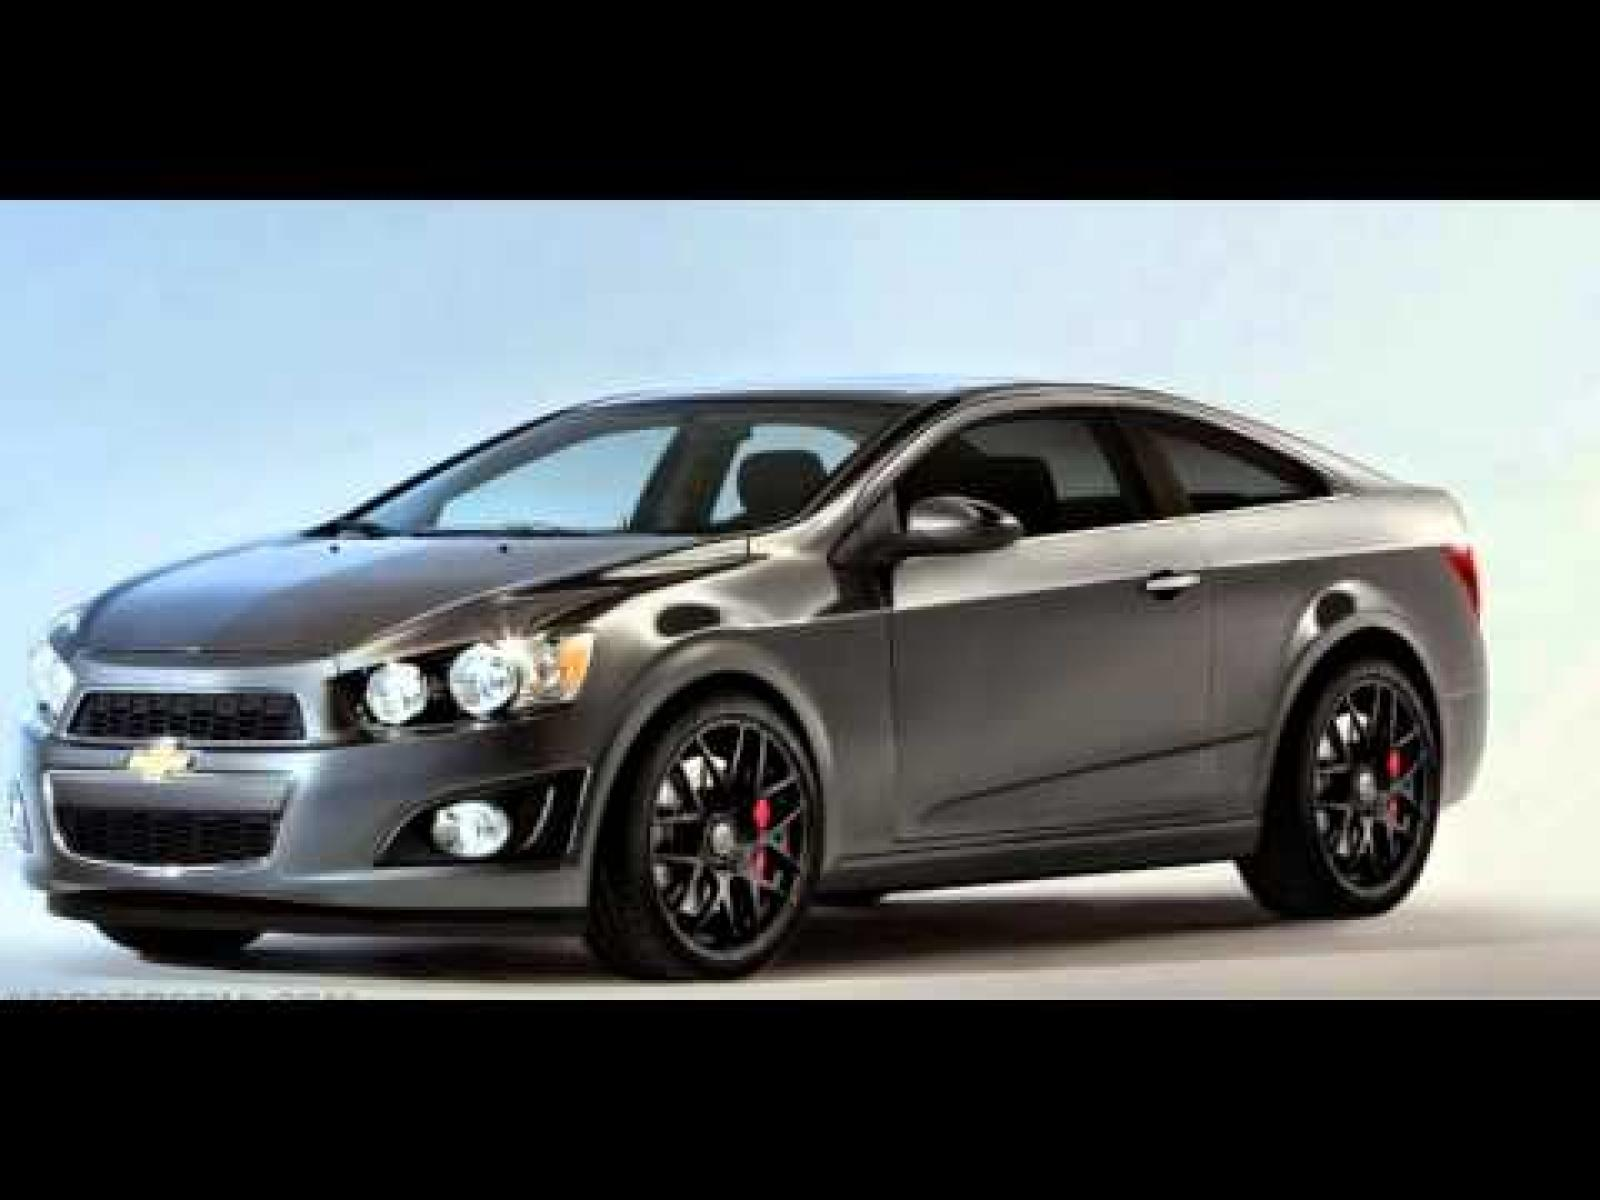 2015 Chevrolet Sonic Information And Photos Zomb Drive